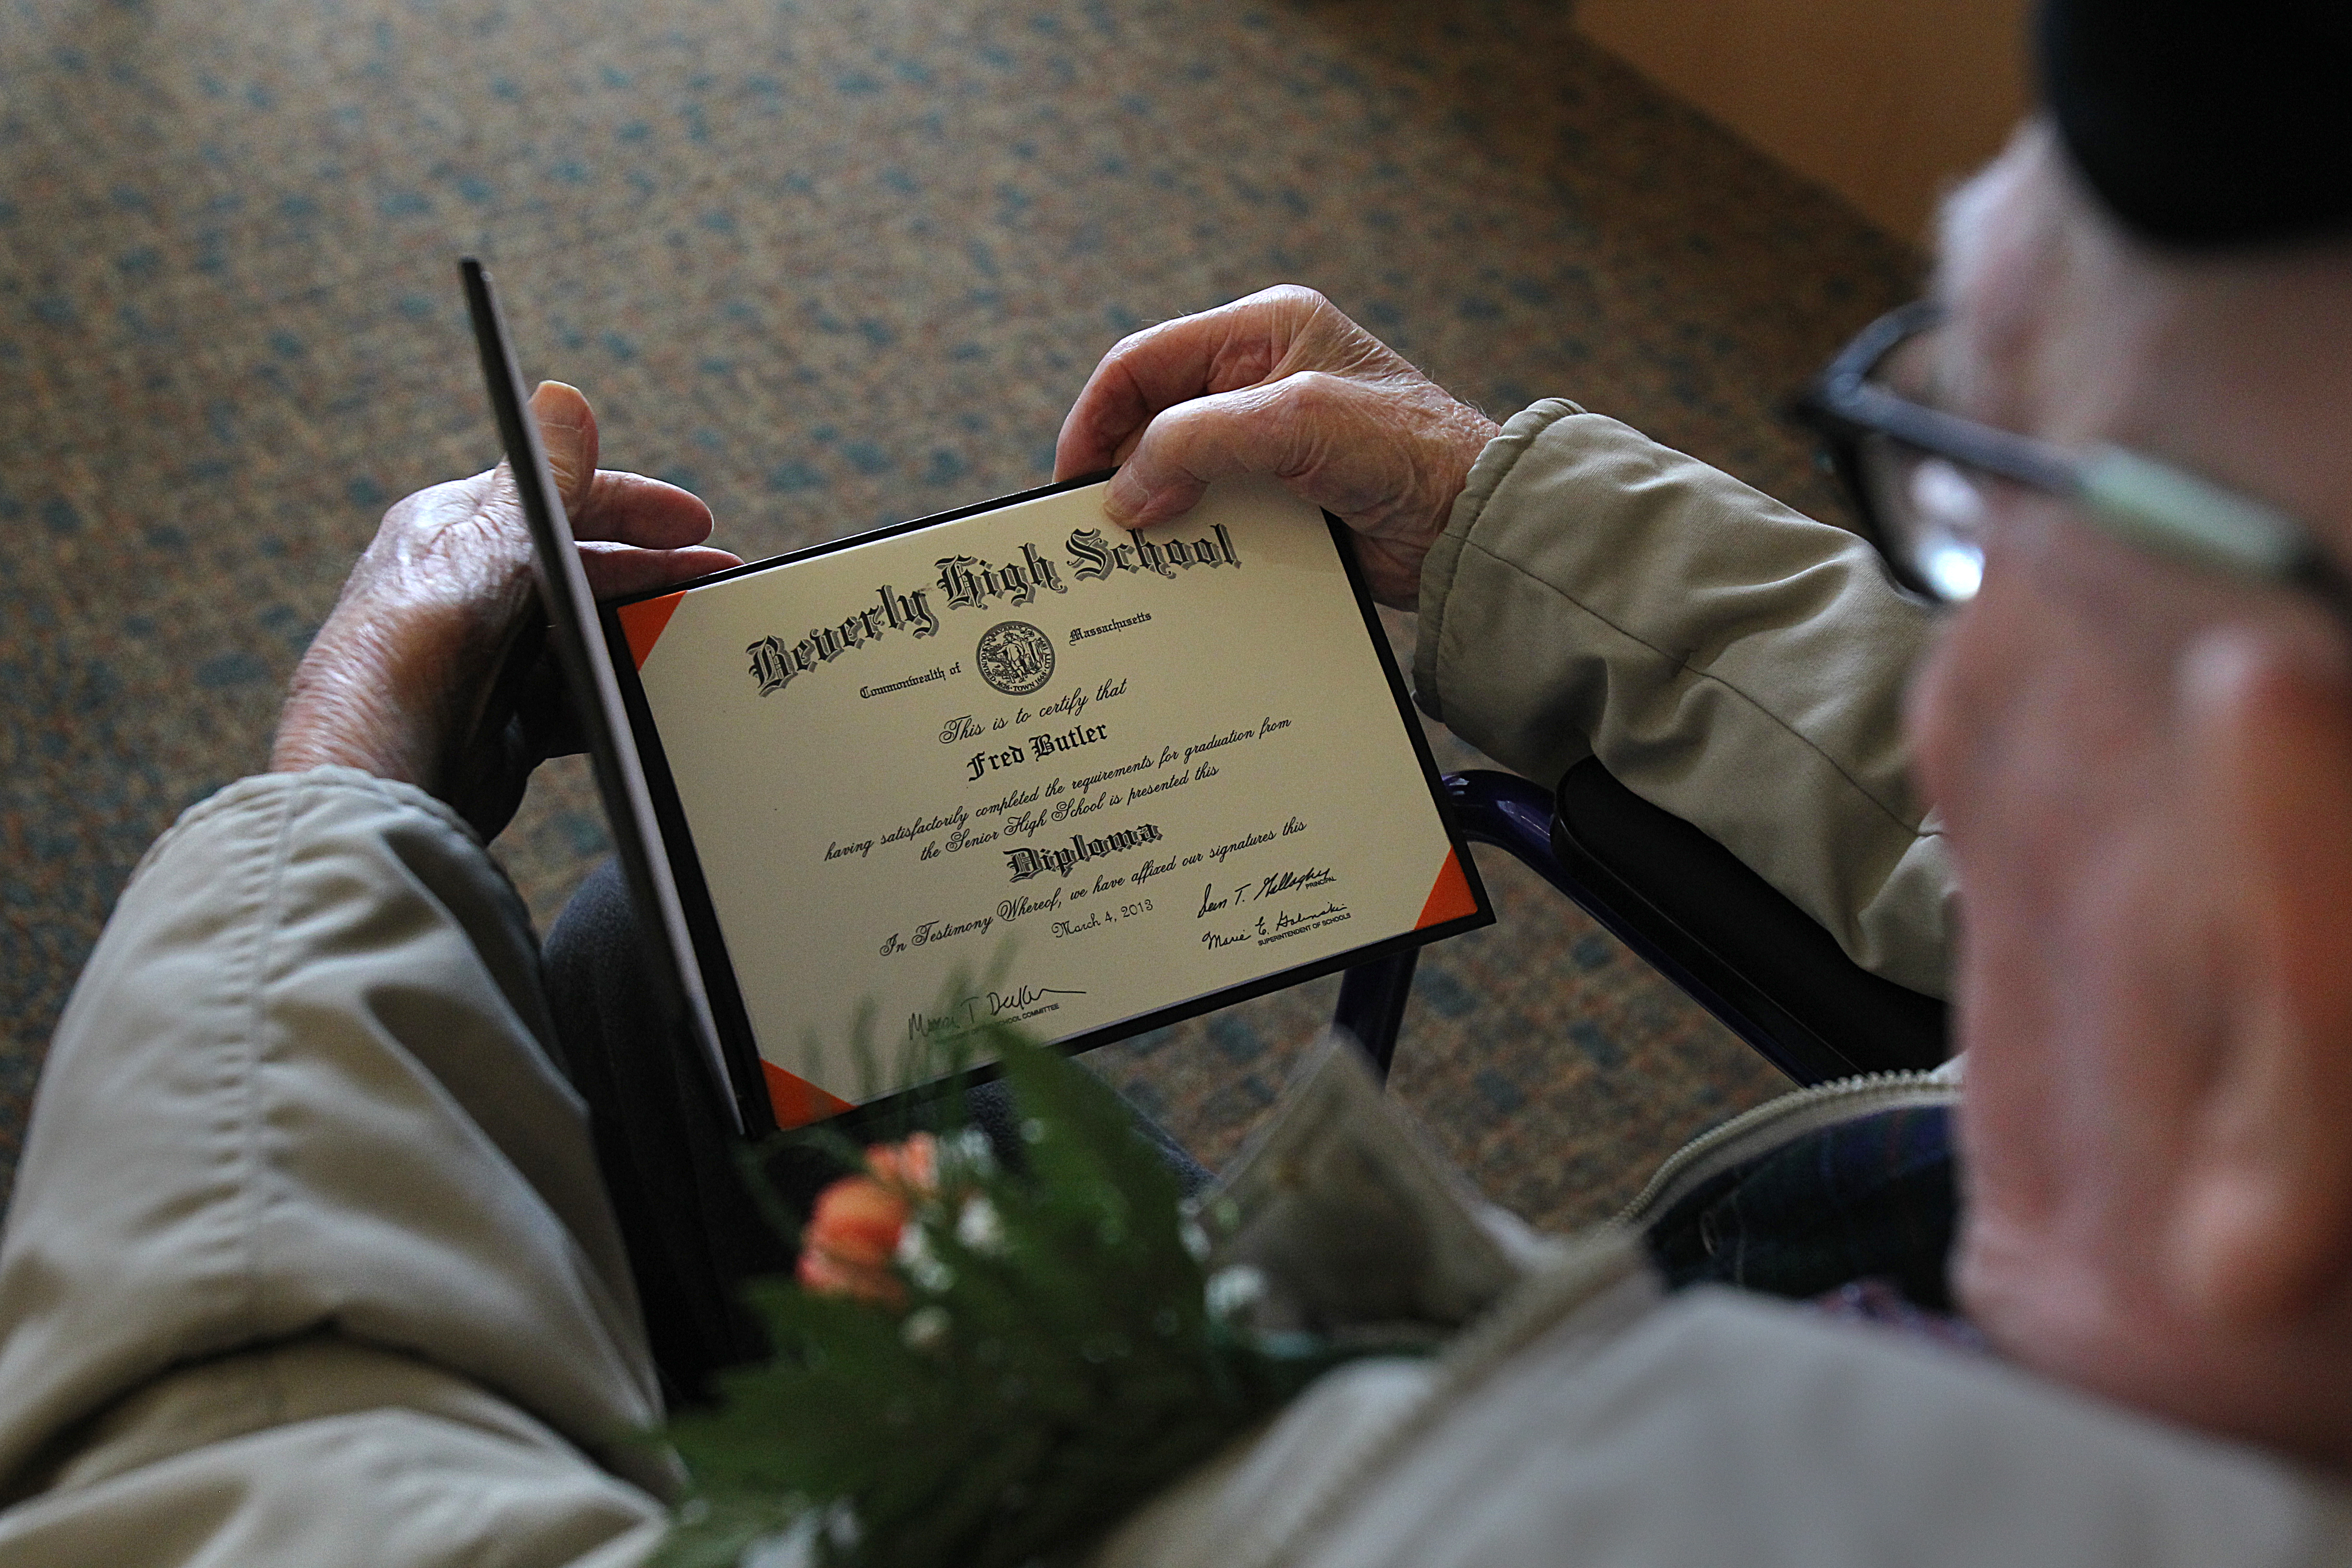 At 106, Beverly Man Proud To Hold High School Diploma